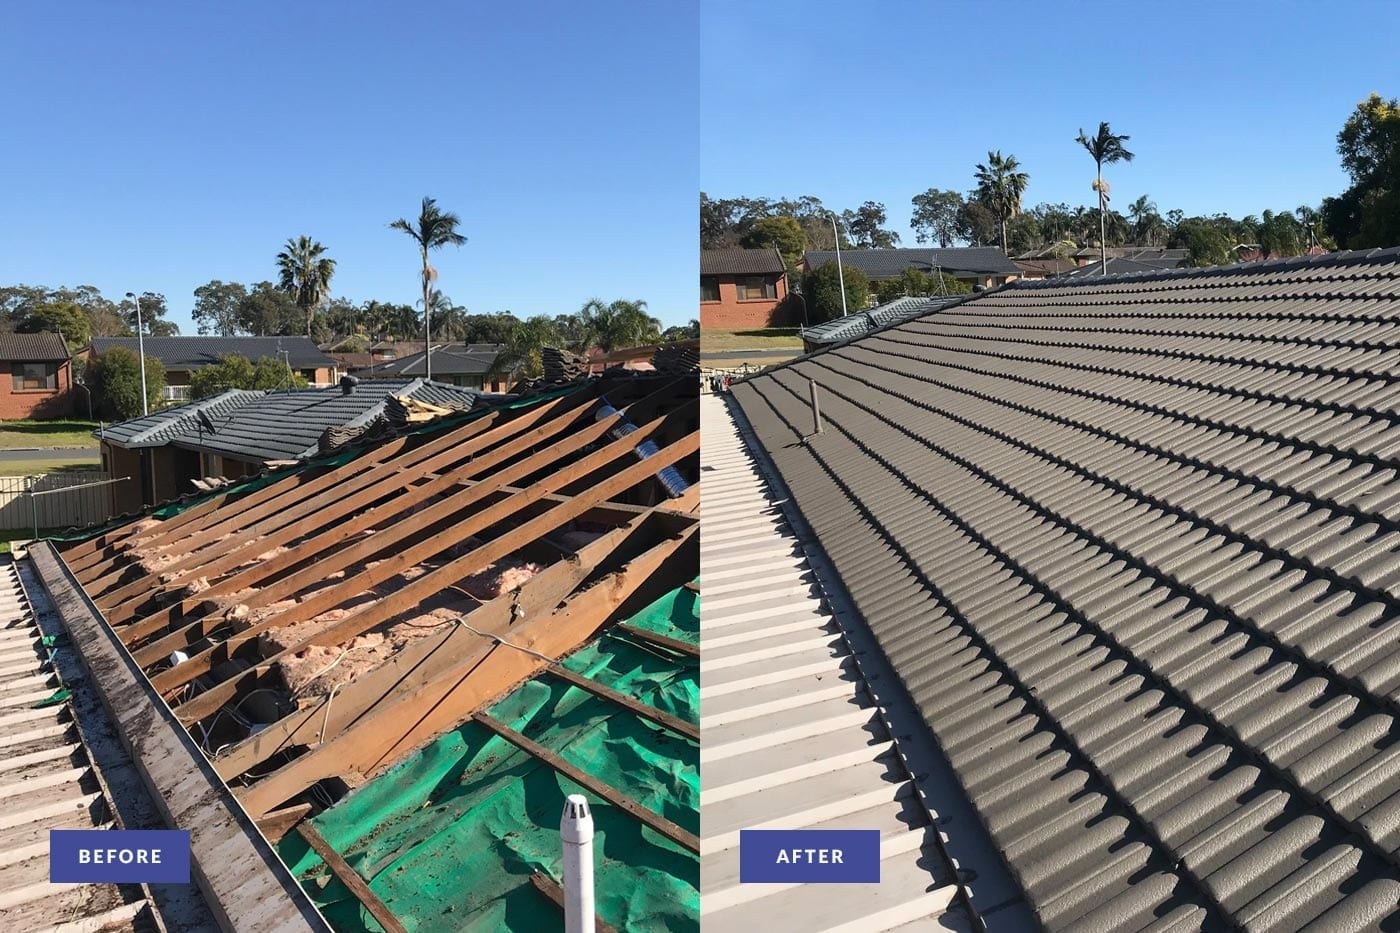 tiled roof restoration before and after